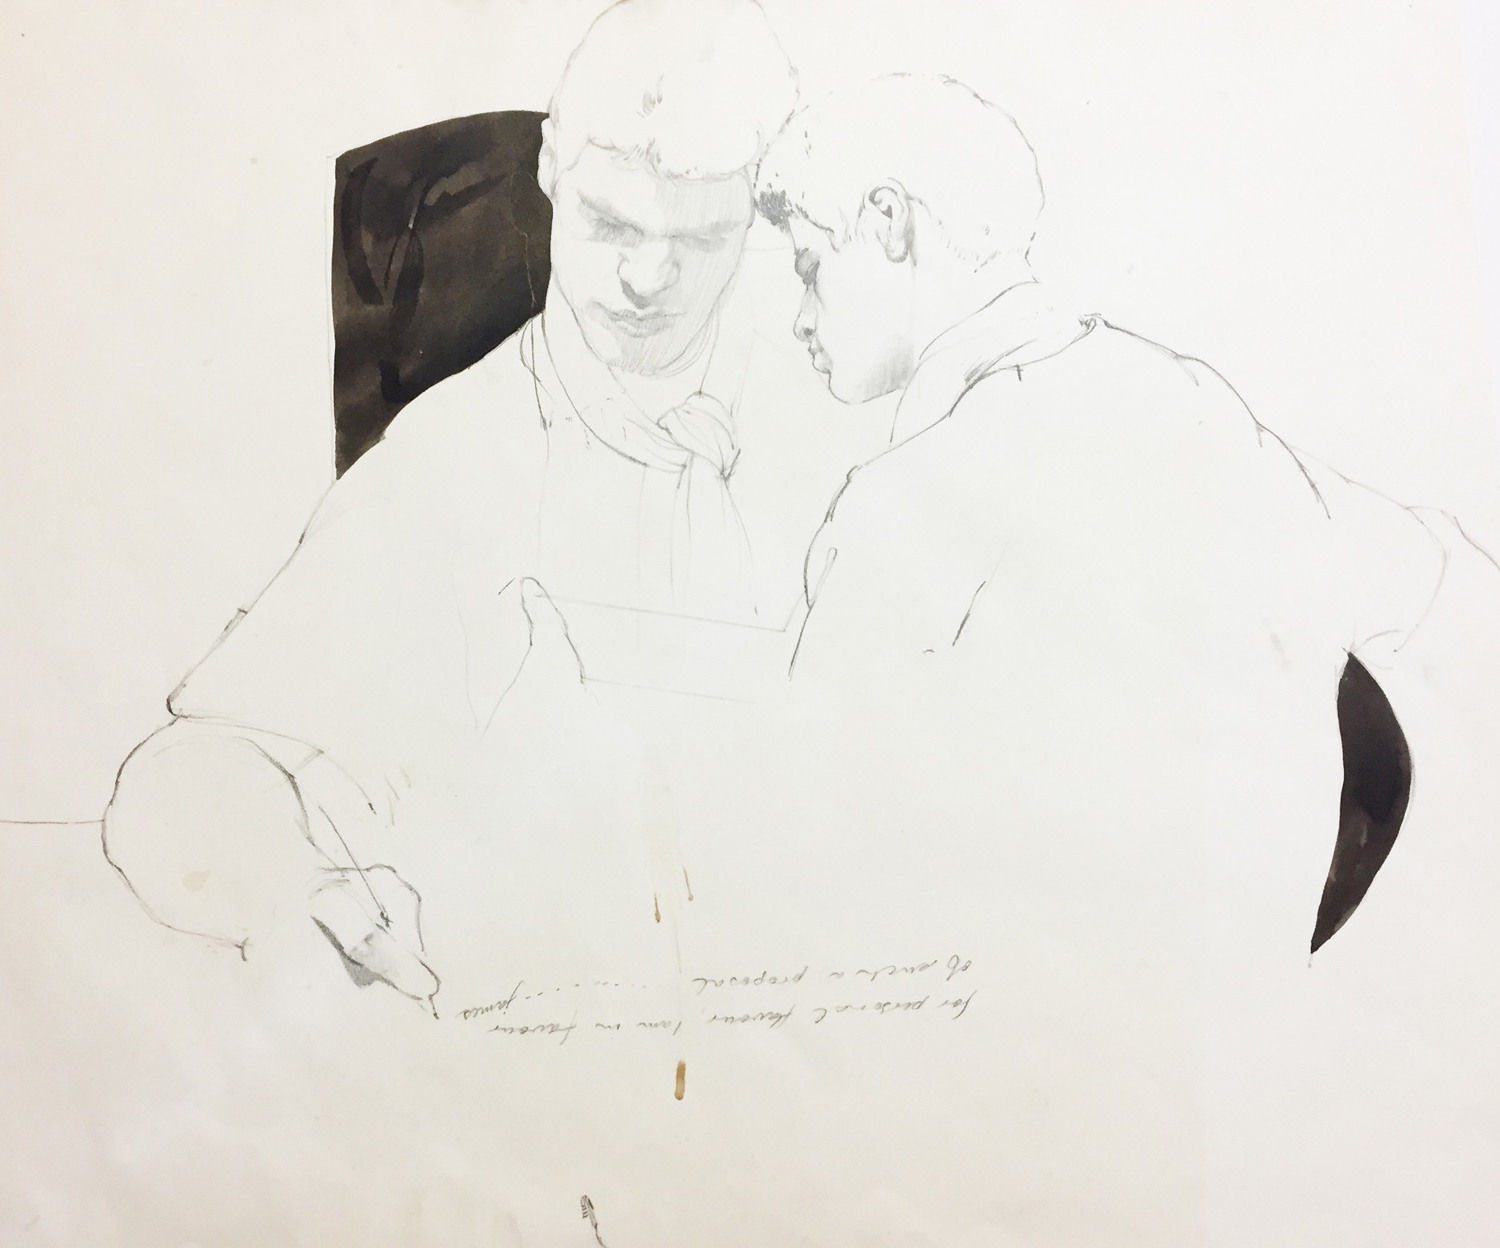 Ben Joel,  Mr Dibble Twice  1983 ,  pencil on paper